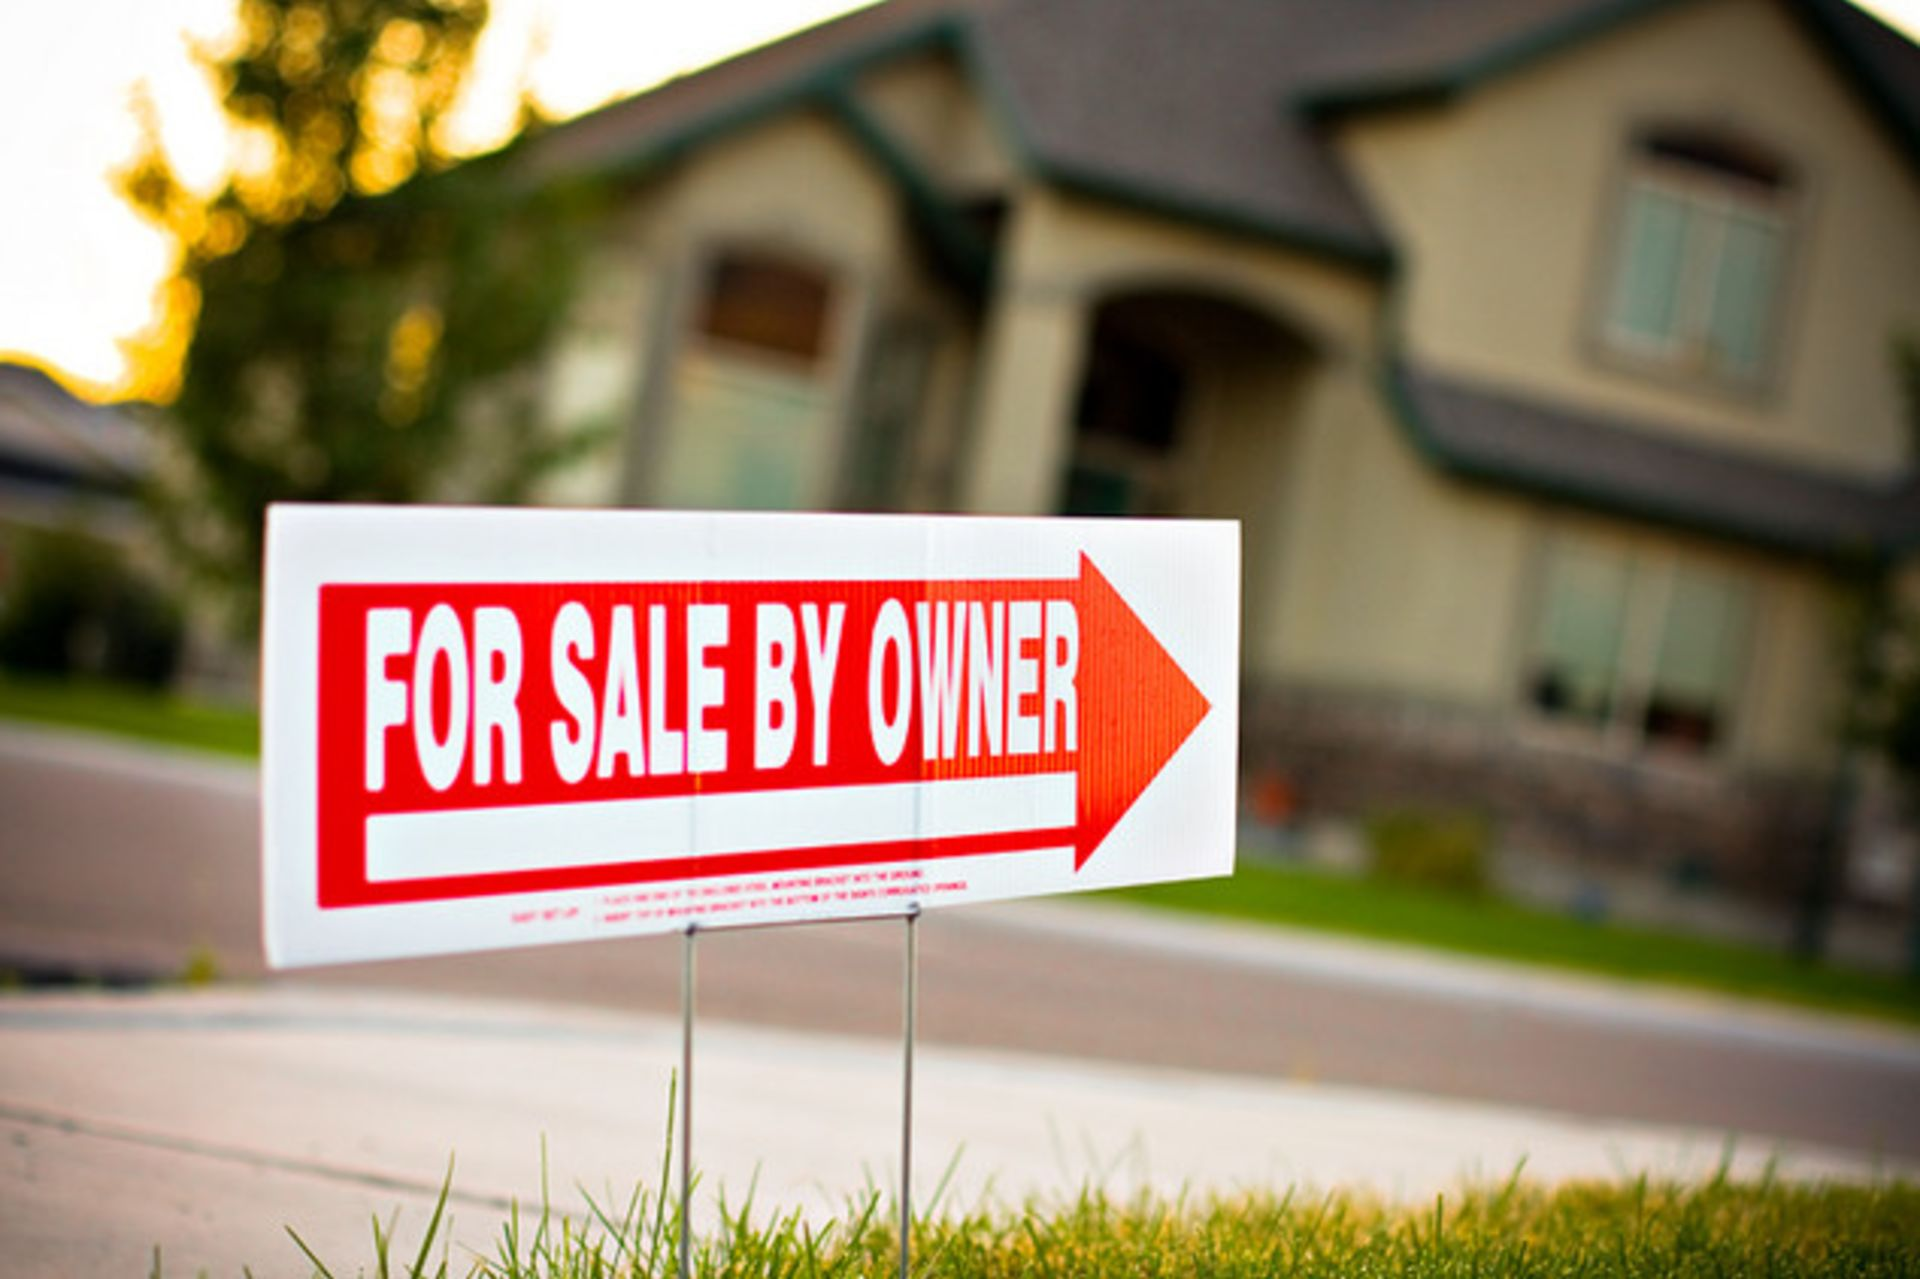 The Risks of A For Sale By Owner